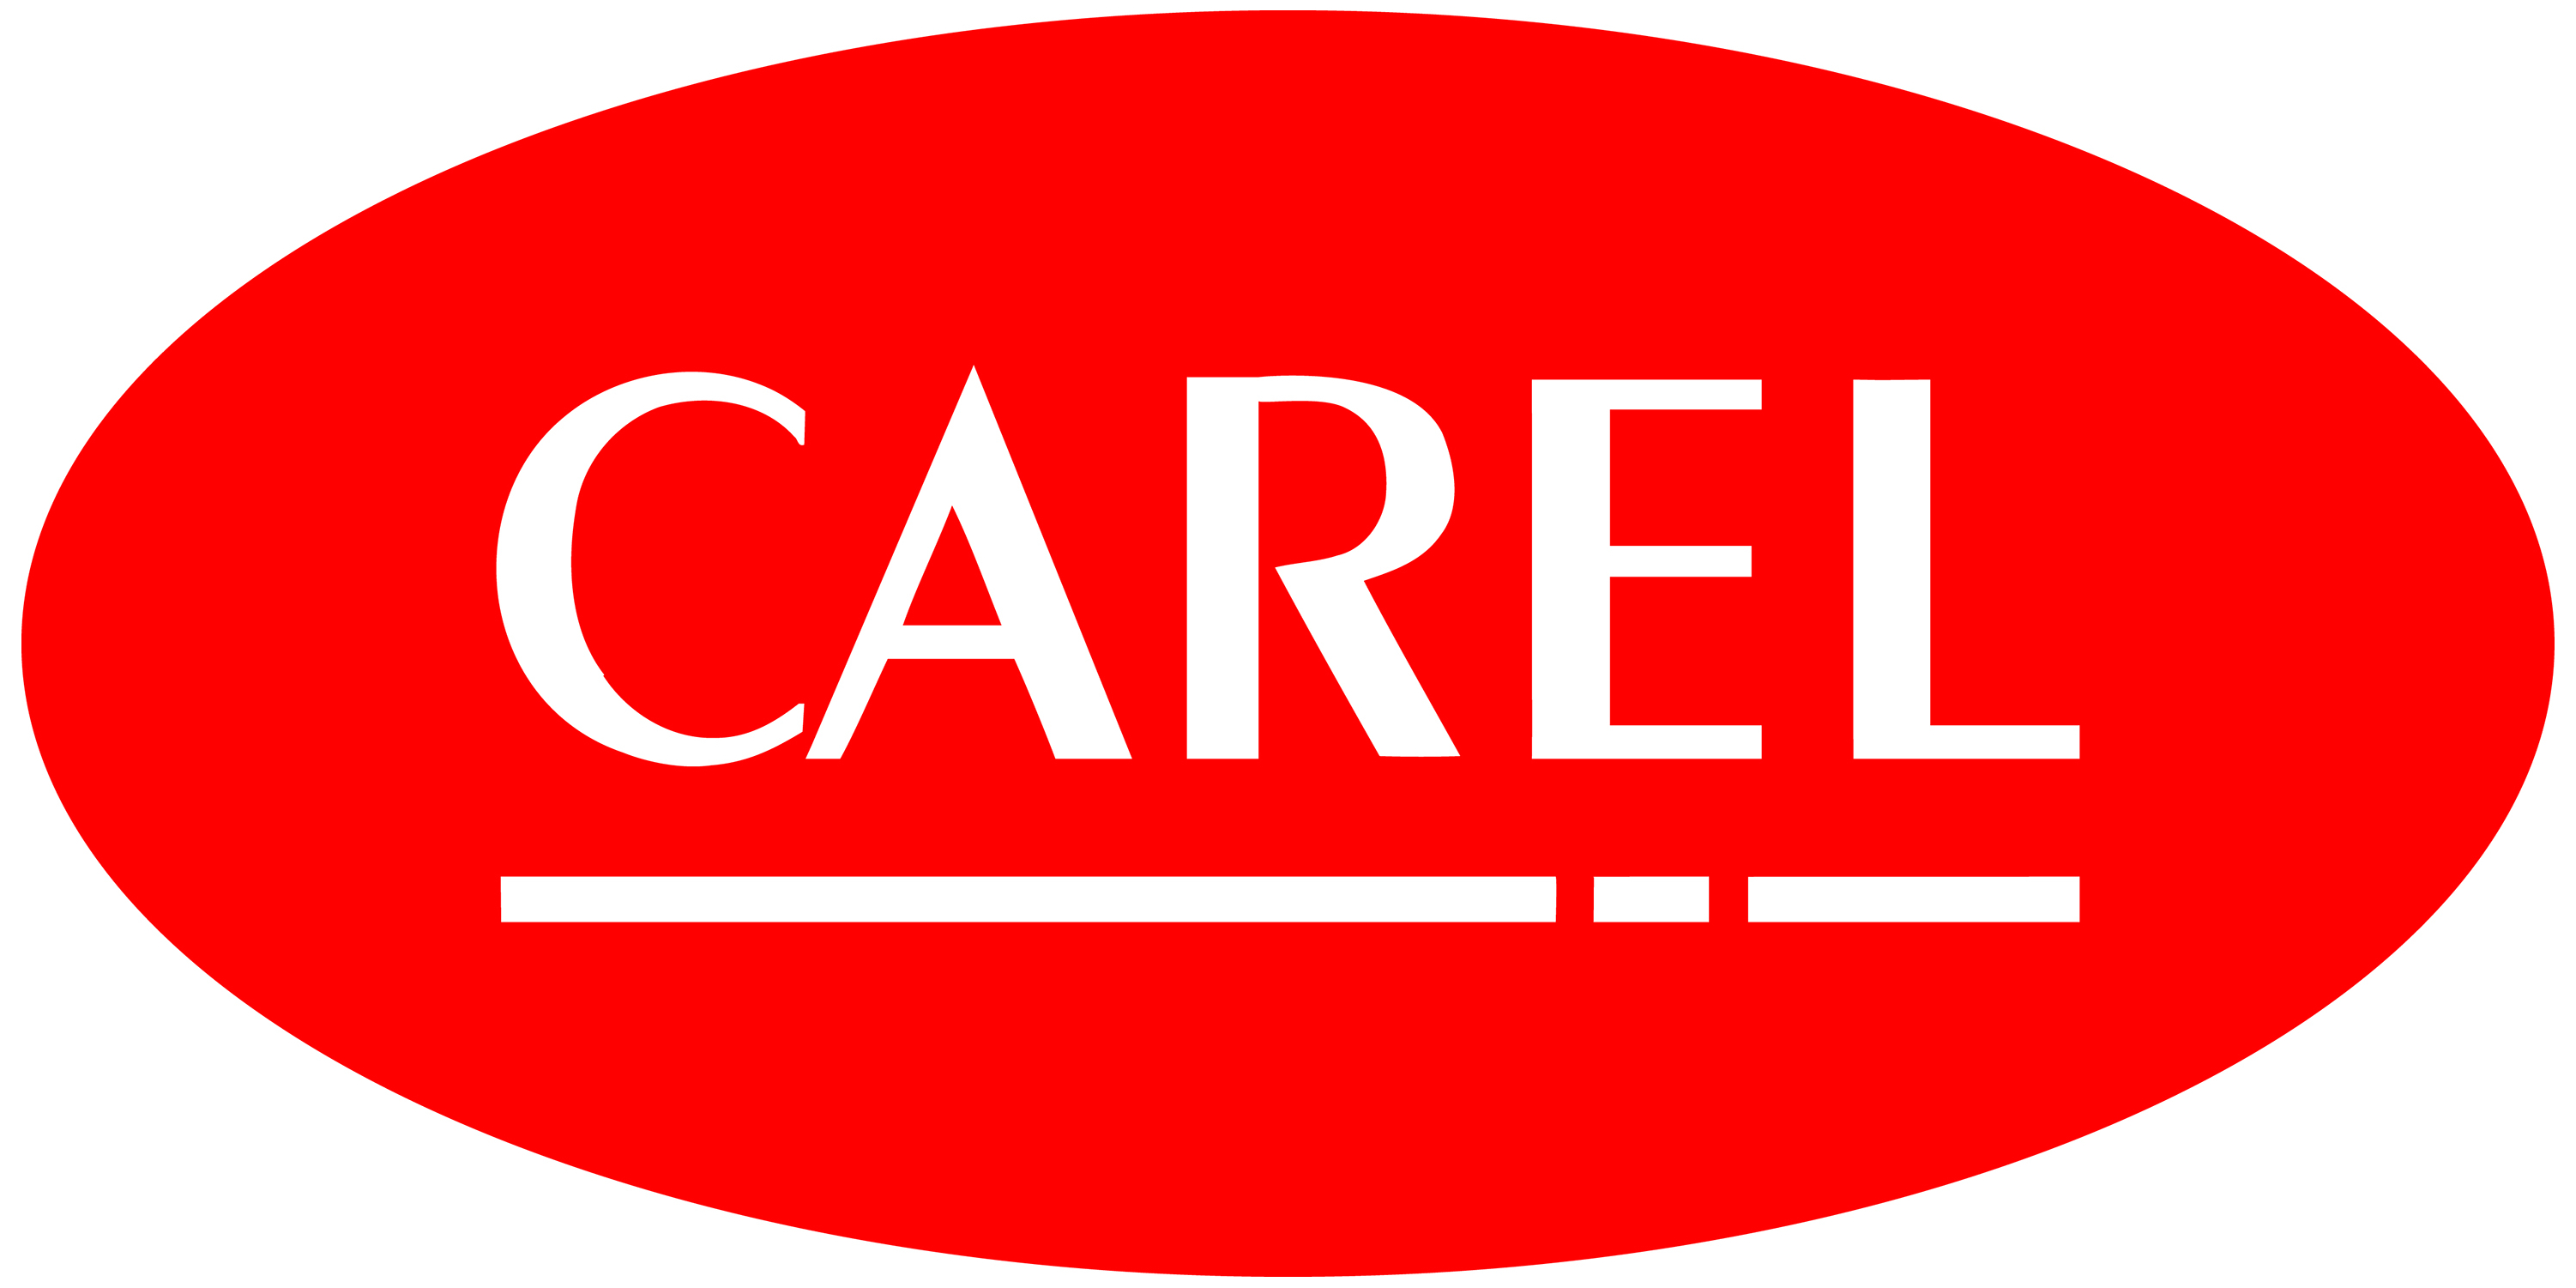 CAREL - LEAN, a philosophy driving growth